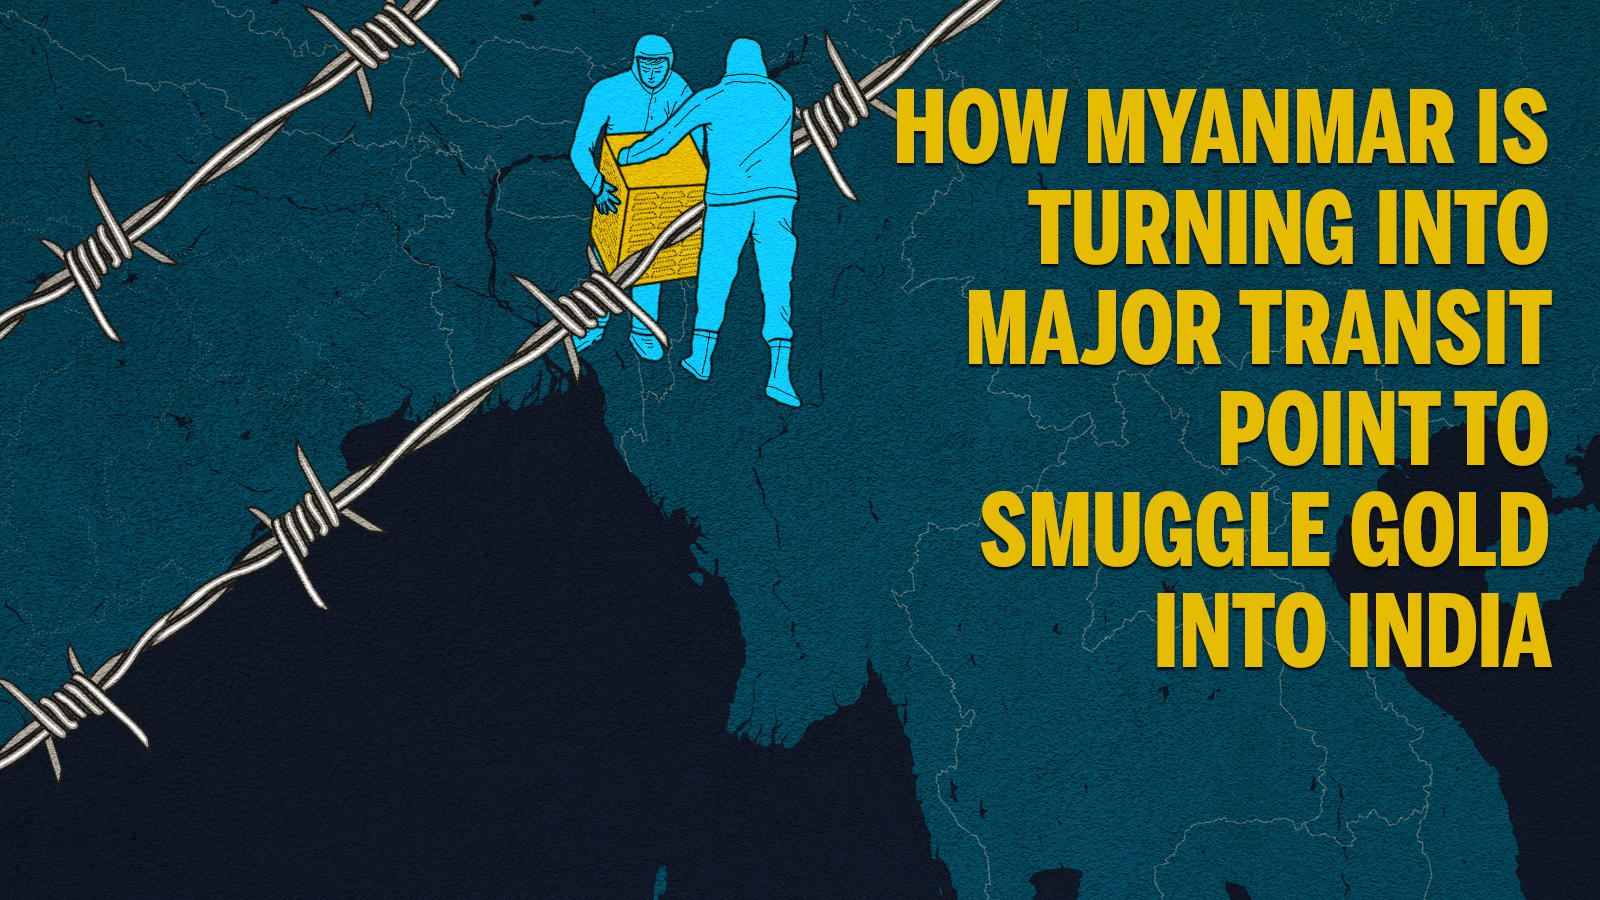 How Myanmar is turning into major transit point to smuggle